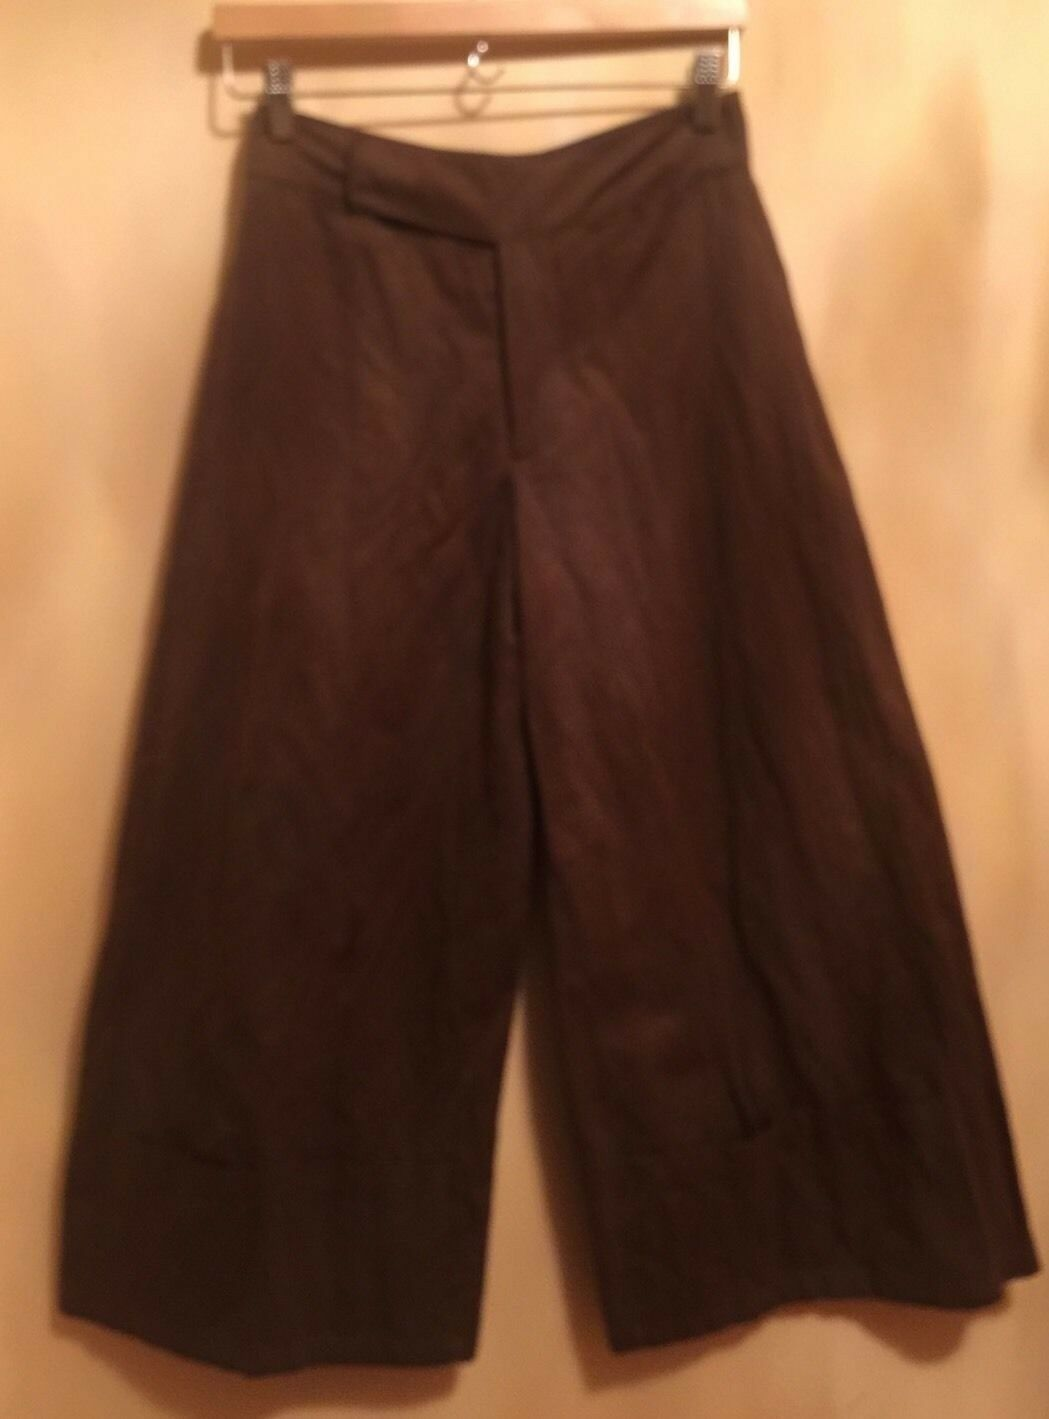 Pre-owned MARNI braun Cotton Blend braun Wide Leg Pants SZ 38 Made in